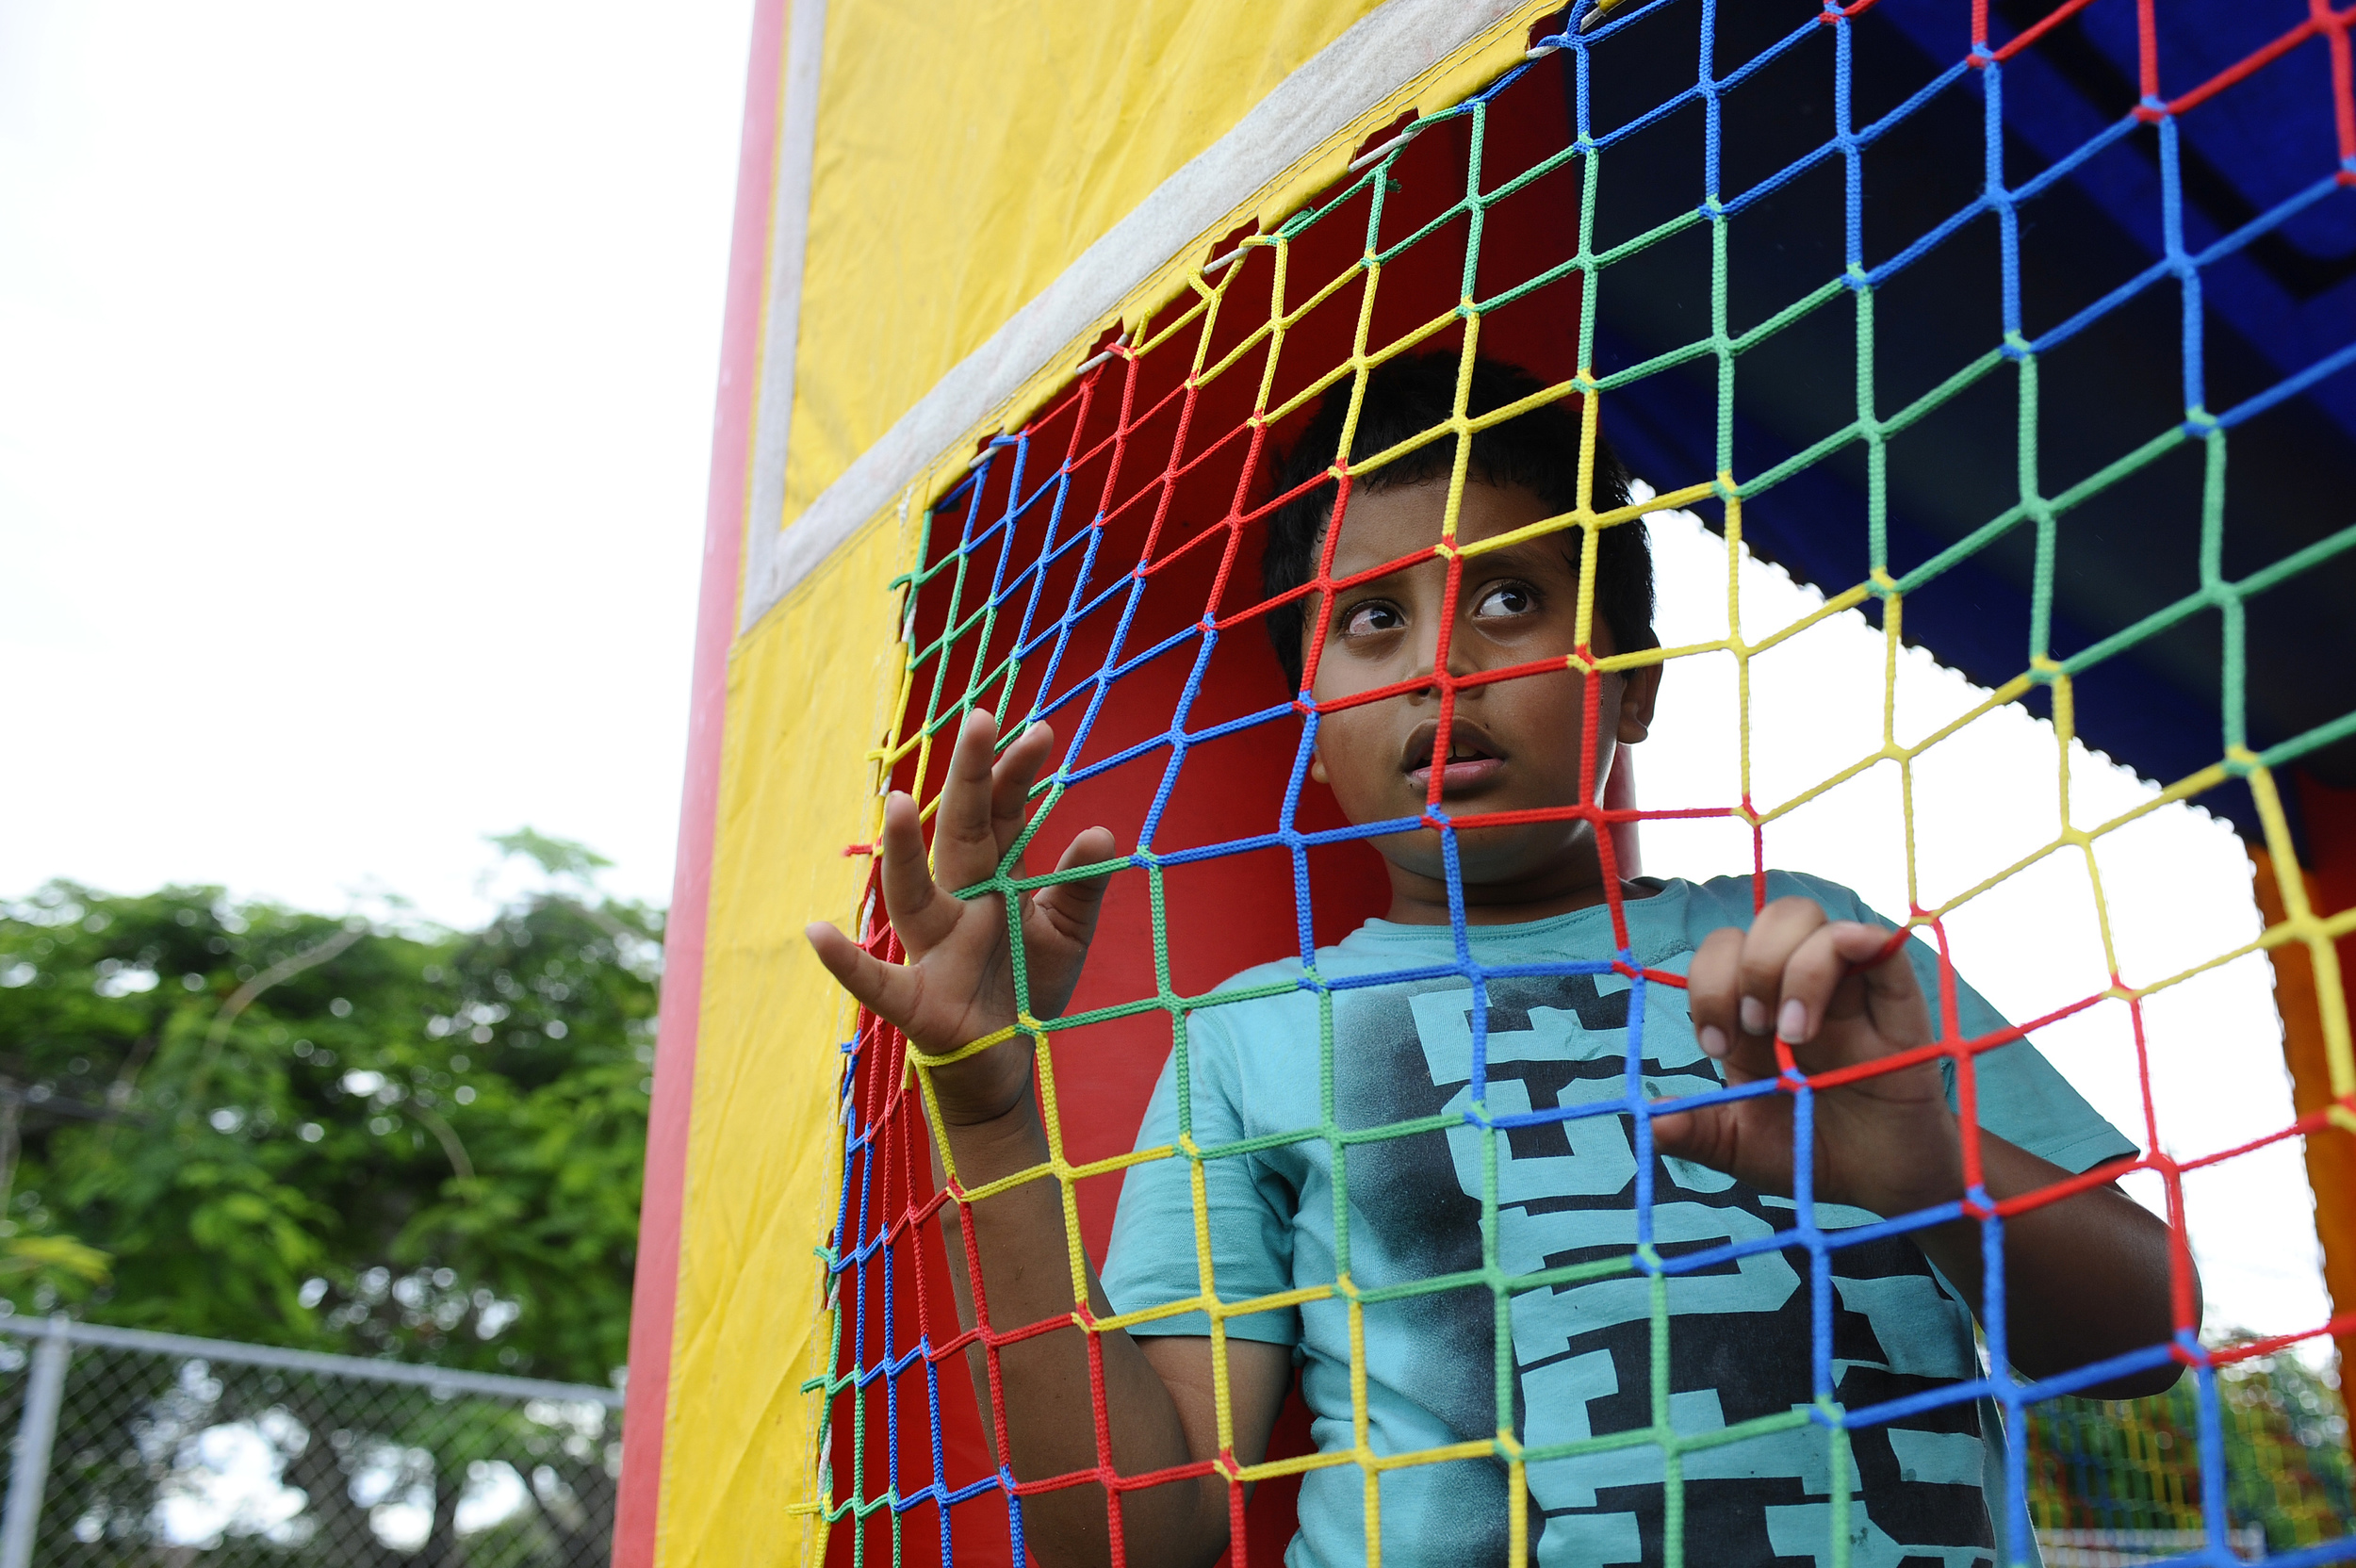 Ronald Salgado, 9, looks through the netting of a bounce house during a community event held in Homestead celebrating the 25th anniversary of the Centro De La Salle community center that has assisted and protected many young undocumented children and families.